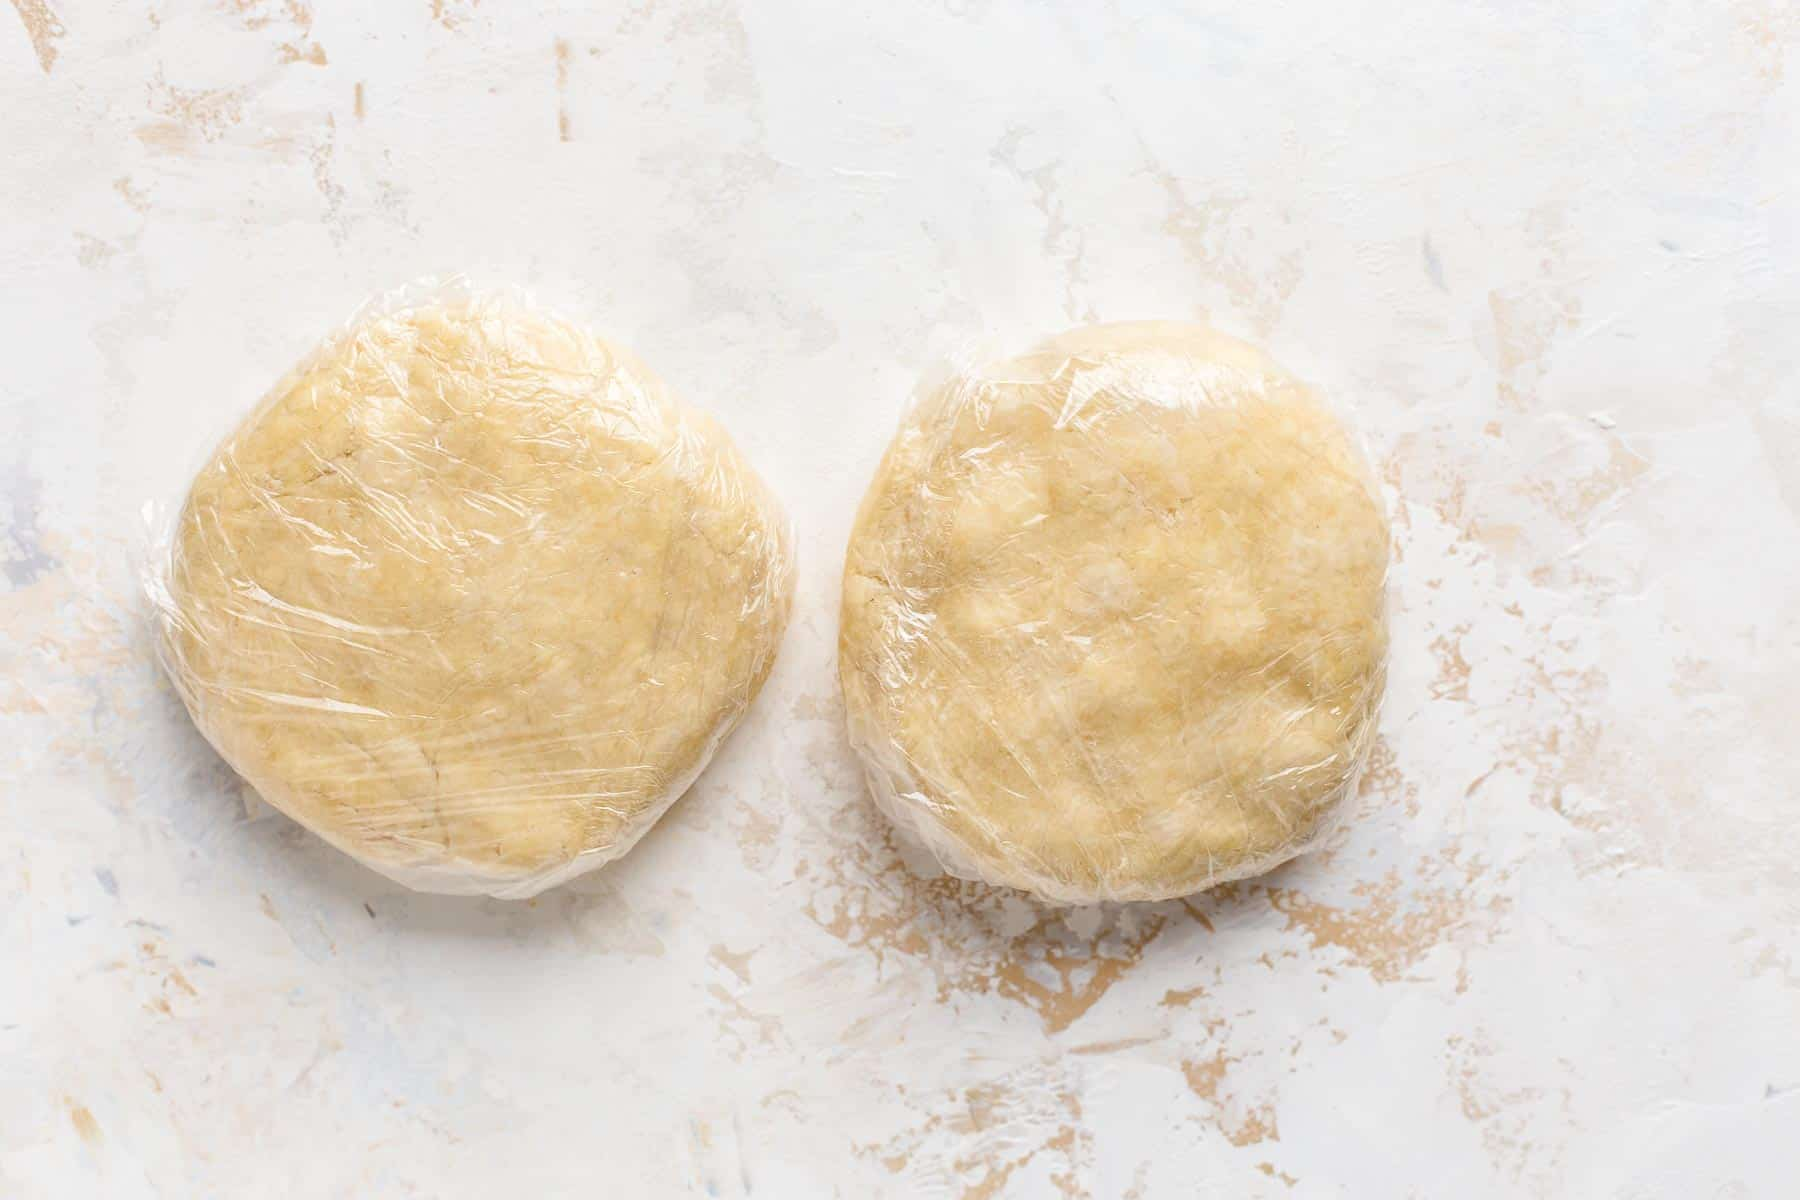 pie crust dough wrapped in plastic on counter